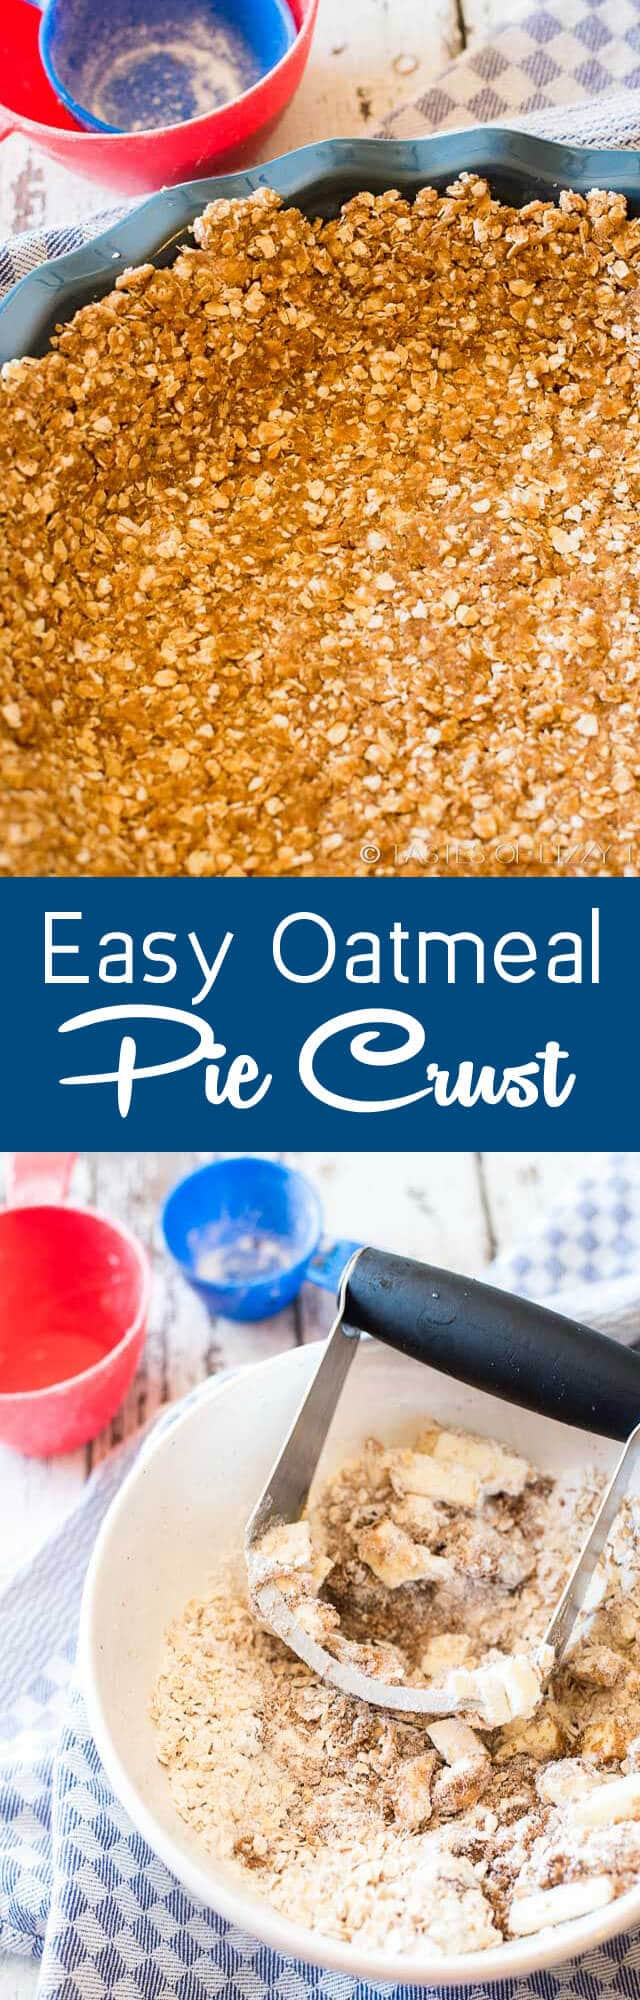 Tired of graham cracker crusts? This 5 ingredient, brown sugar, easy oatmeal pie crust makes the most delicious and unique base to creamy, no-bake pies. It tastes like an oatmeal cookie!